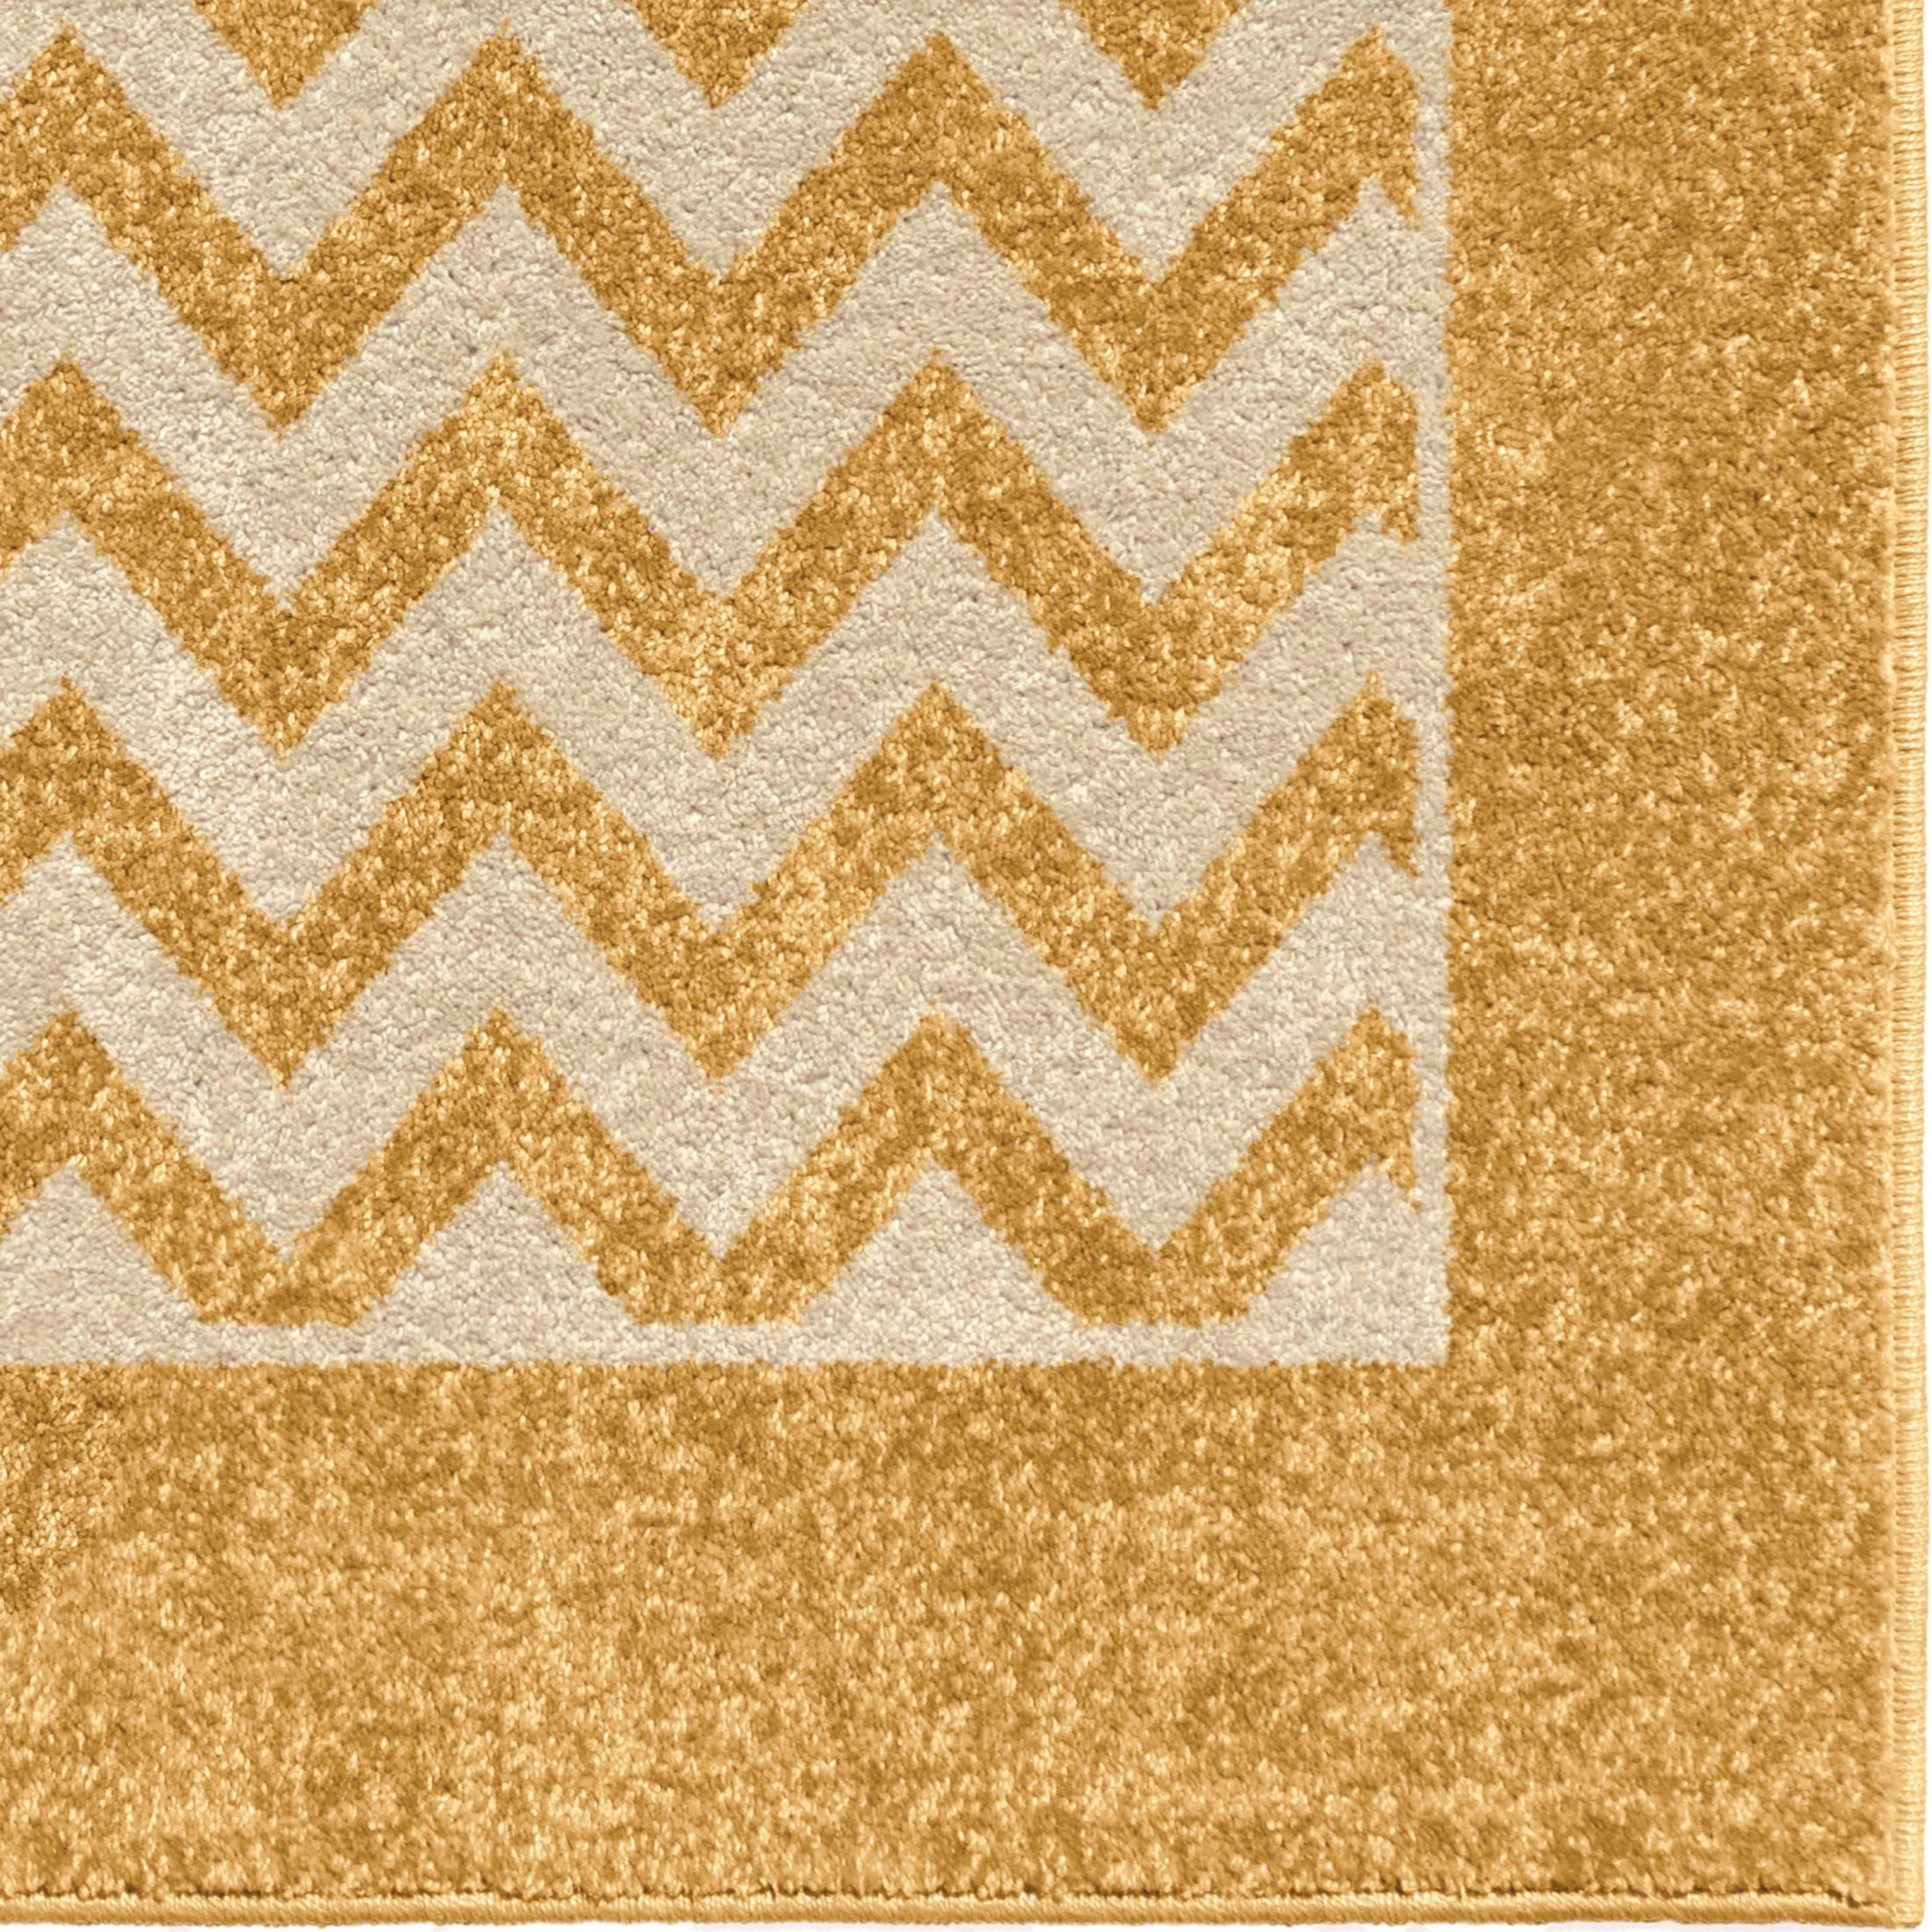 Large Area Rugs Gold: Orian Rugs Indoor/Outdoor Geometric Sunny Day Stripe Gold